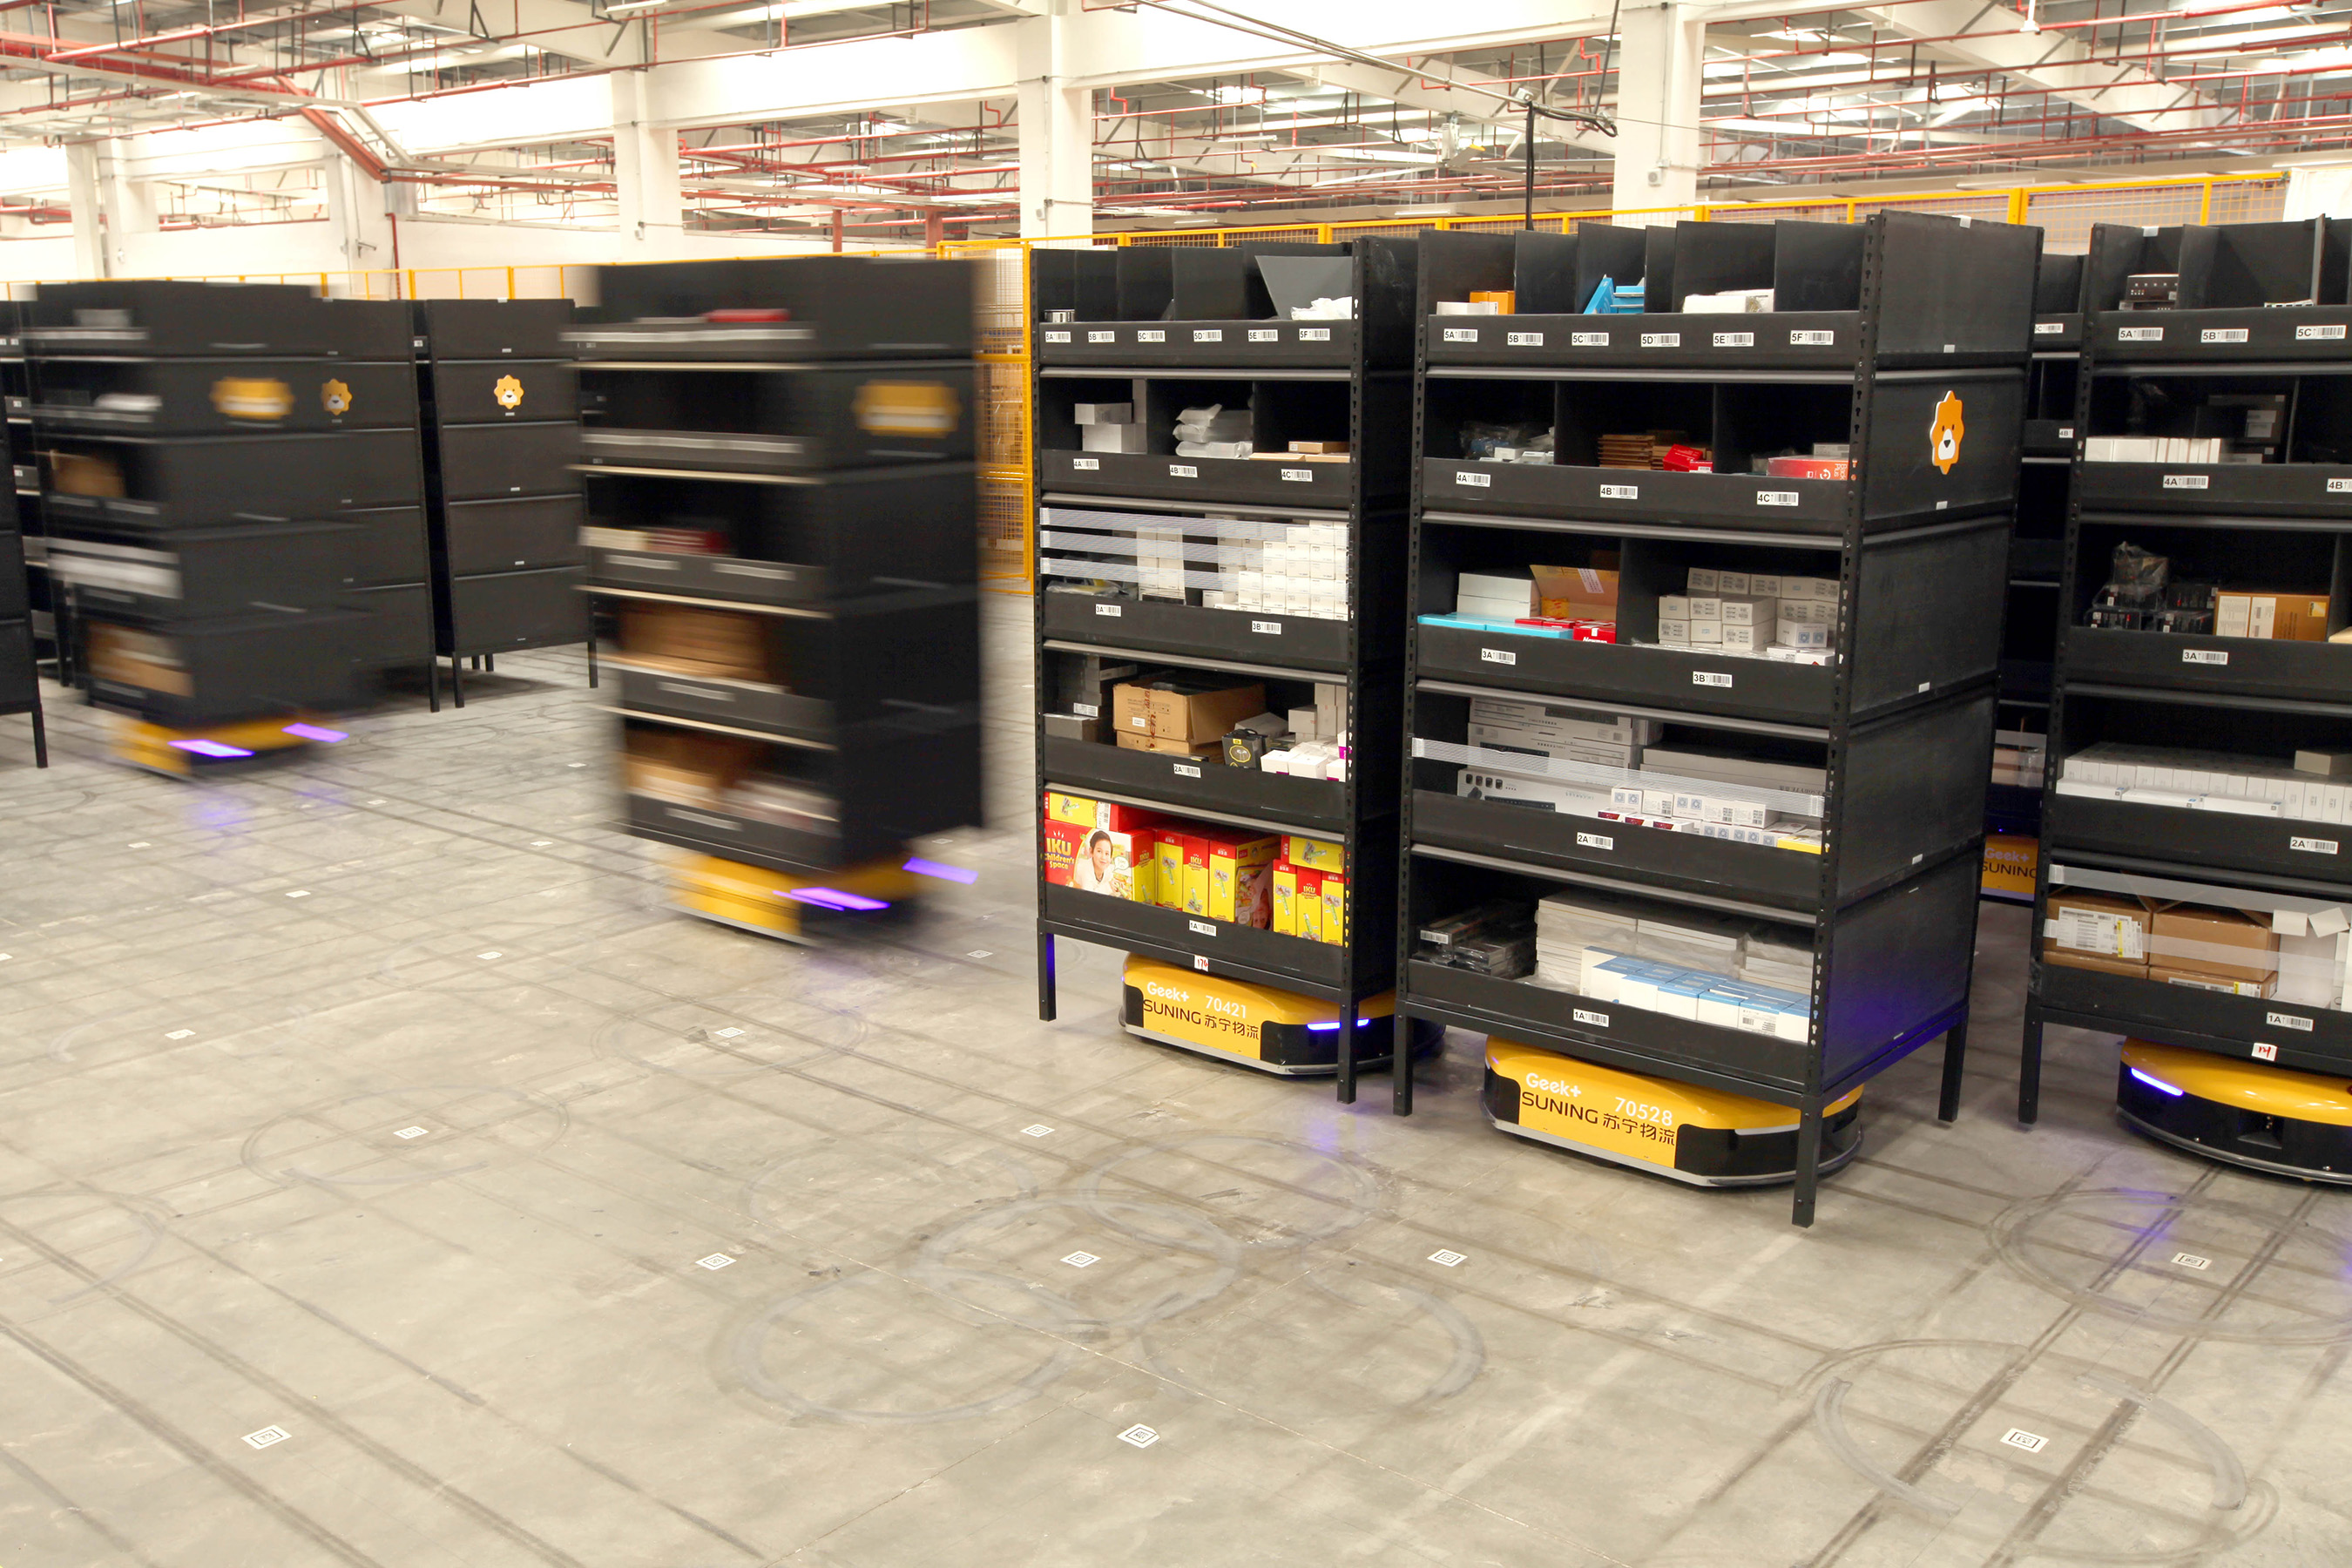 The AGV robots could automatically avoid obstacles and queue intelligently according to dispatches.